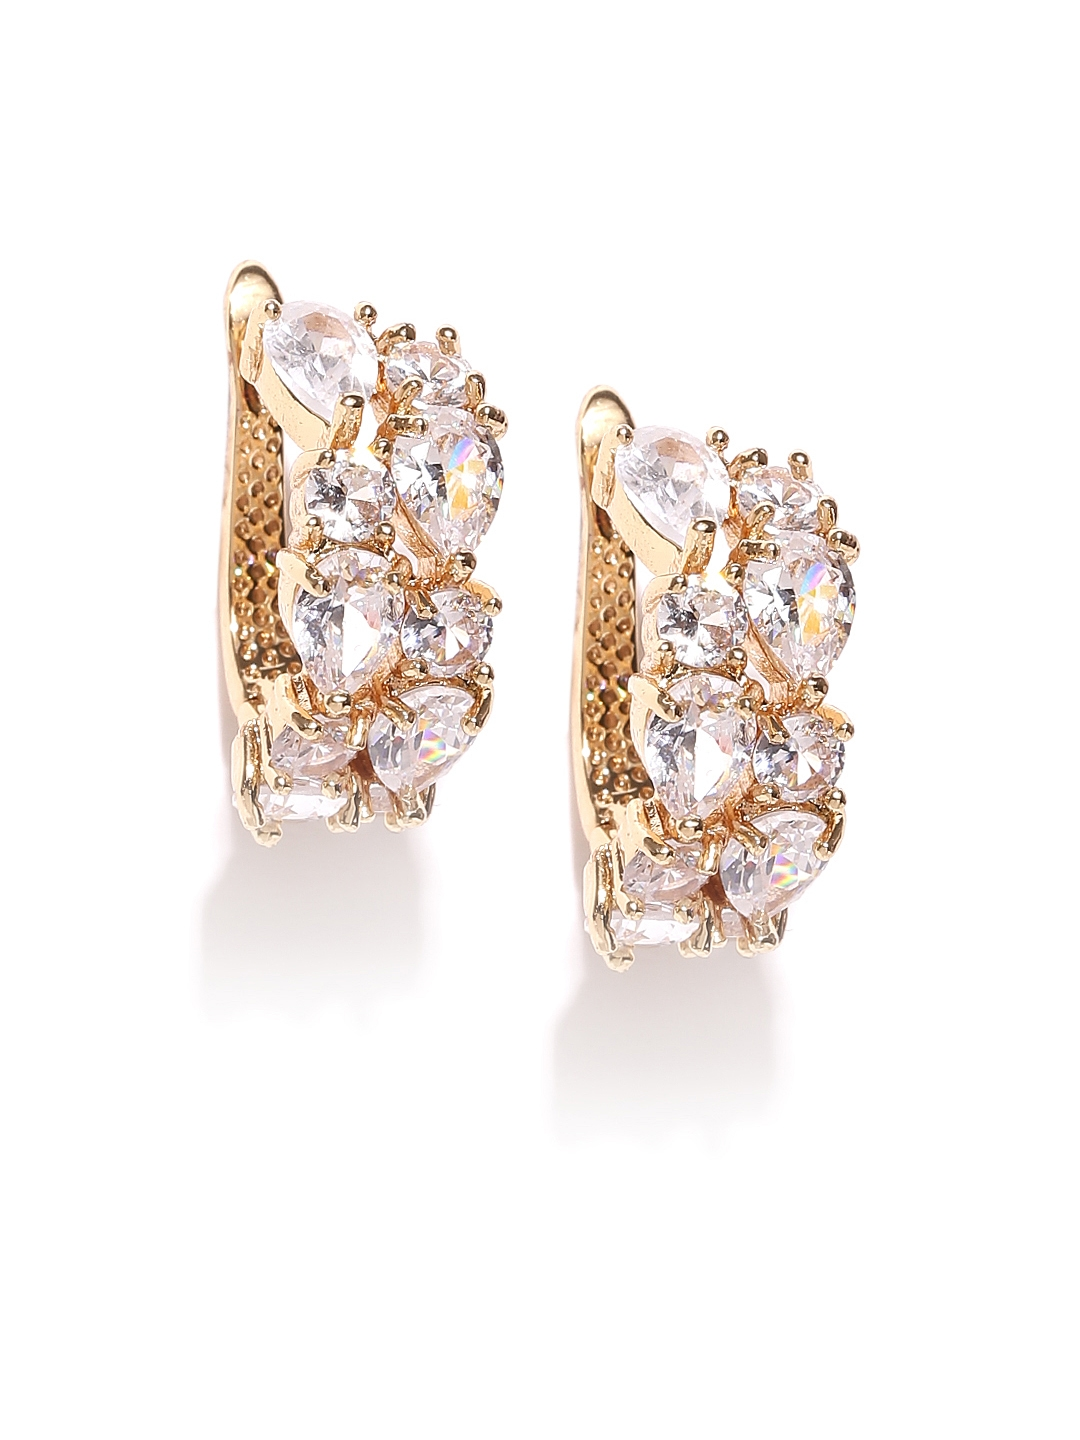 4f89c26307 Jewels Galaxy 18K Gold-Plated CZ Stone-Studded Handcrafted Hoop Earrings